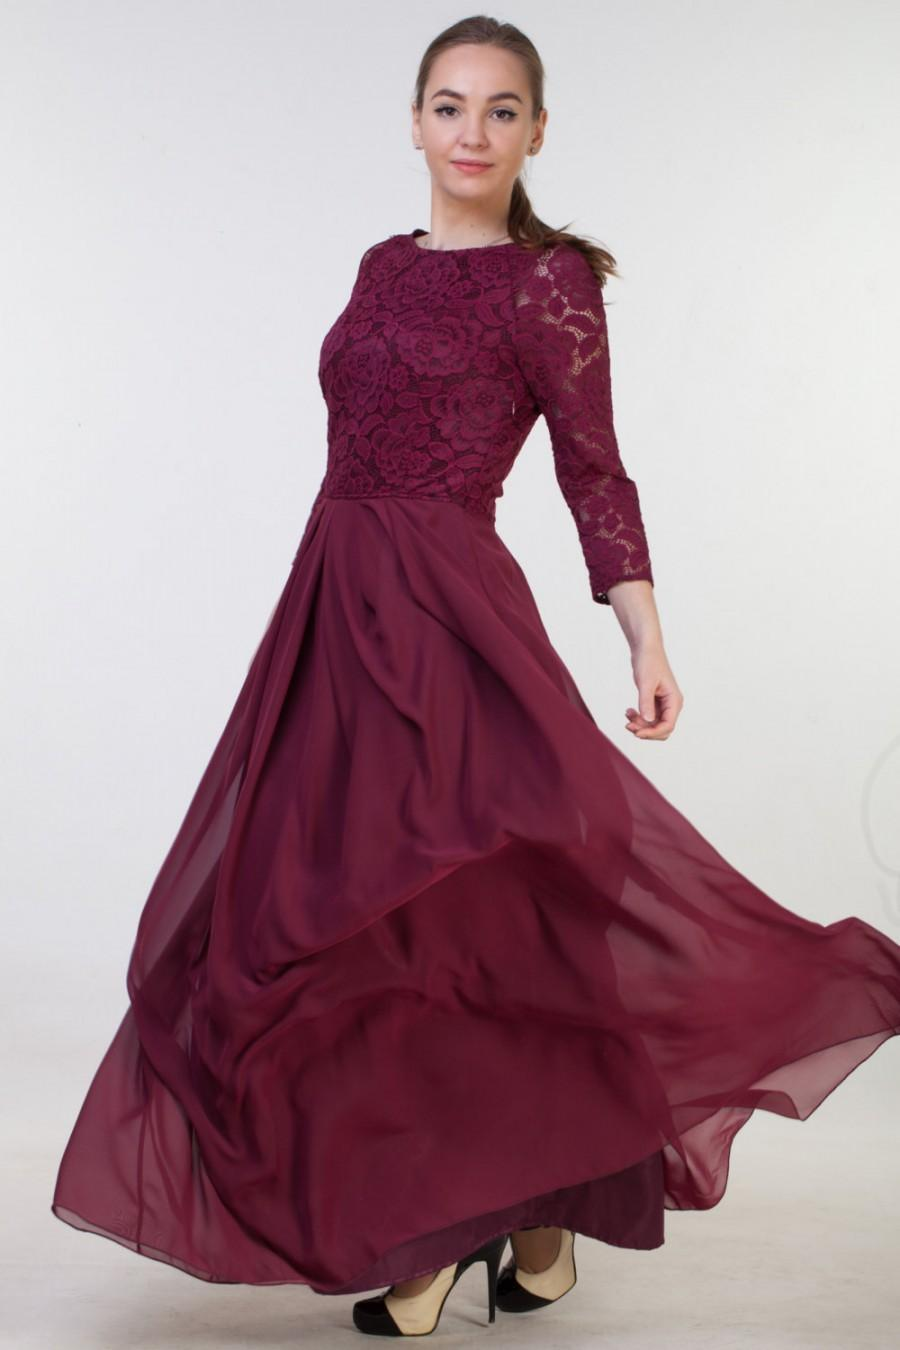 d58dcc54b1b0 Long burgundy lace dress for bridesmaids Burgundy bridesmaid dress Long  bridesmaid dress Long prom dress Burgundy dress women